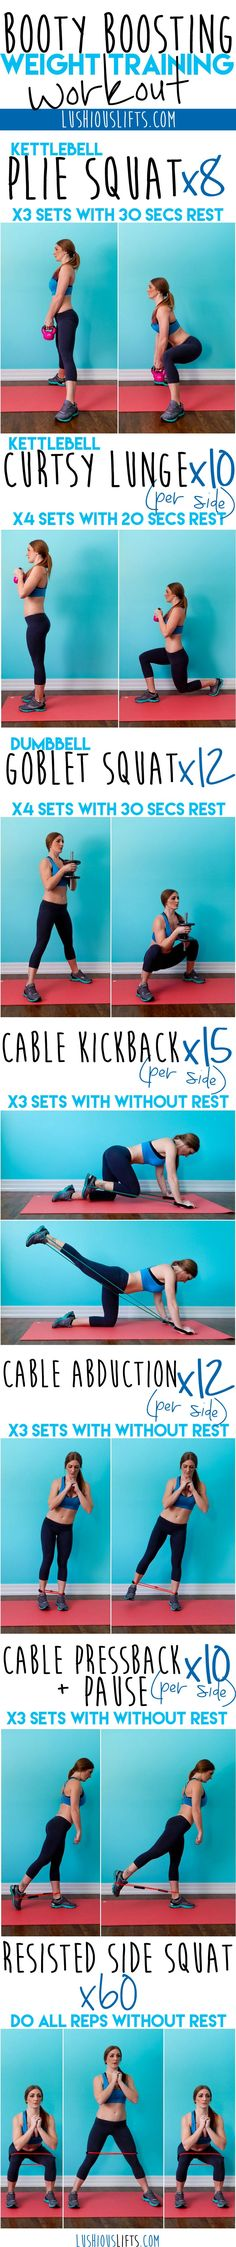 Yoga Fitness Plan - Booty Workout and Exercise to lose weight: For a great full body workout check out: howtoloseweightfr.…Without crunches, cardio, or ever setting foot in a gym! Fitness Workouts, Lower Ab Workouts, Butt Workout, Easy Workouts, Weight Workouts, Step Workout, Workout Women, Workout Plans, Workout Challenge